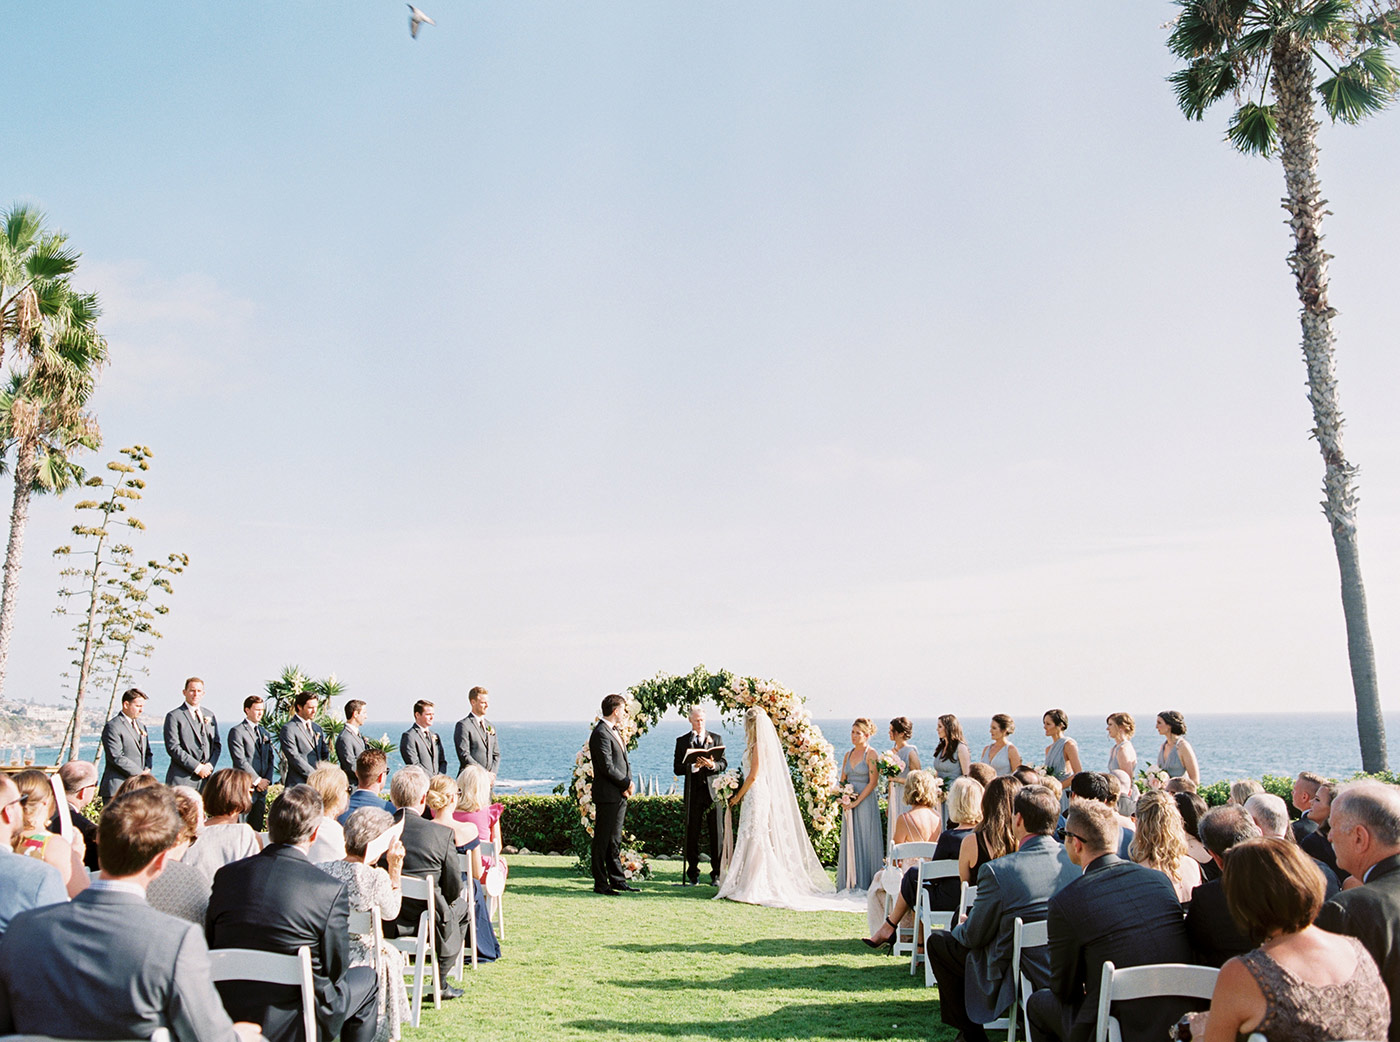 mykaela and brendon wedding ceremony on lawn facing ocean